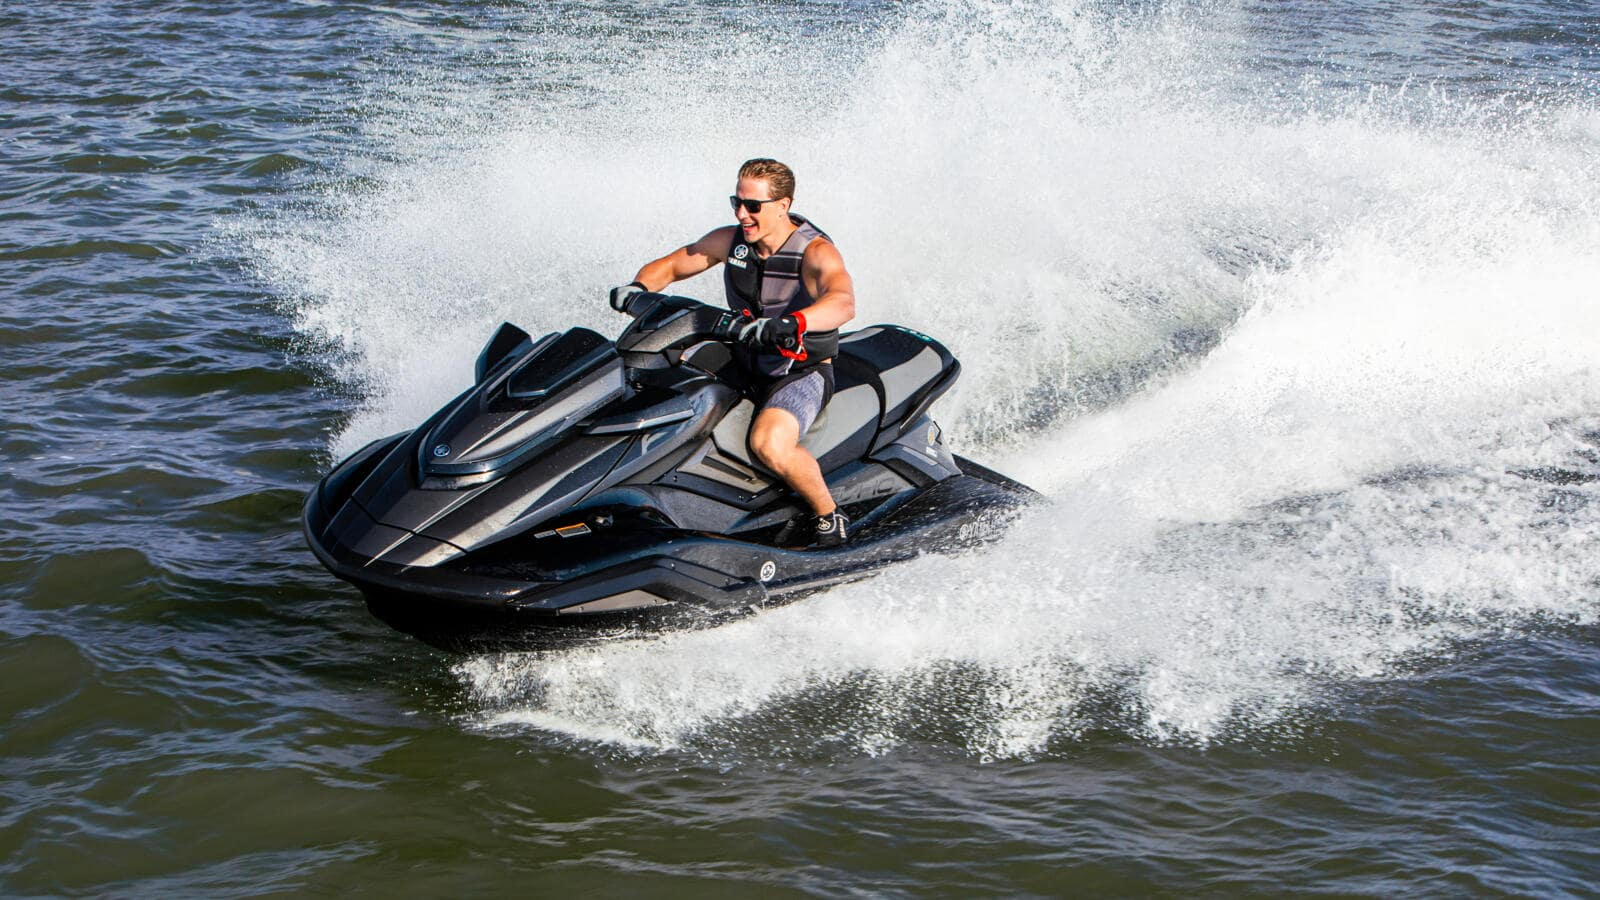 Our Packages: Image of a person riding a jet ski through waves.